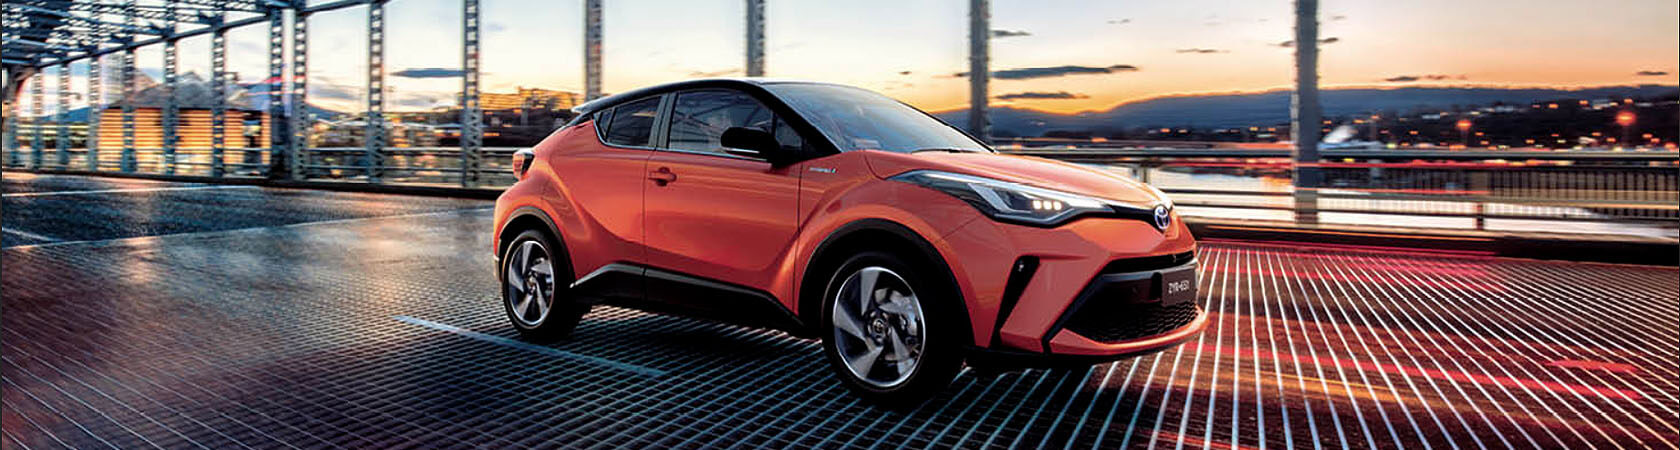 City Toyota C-HR